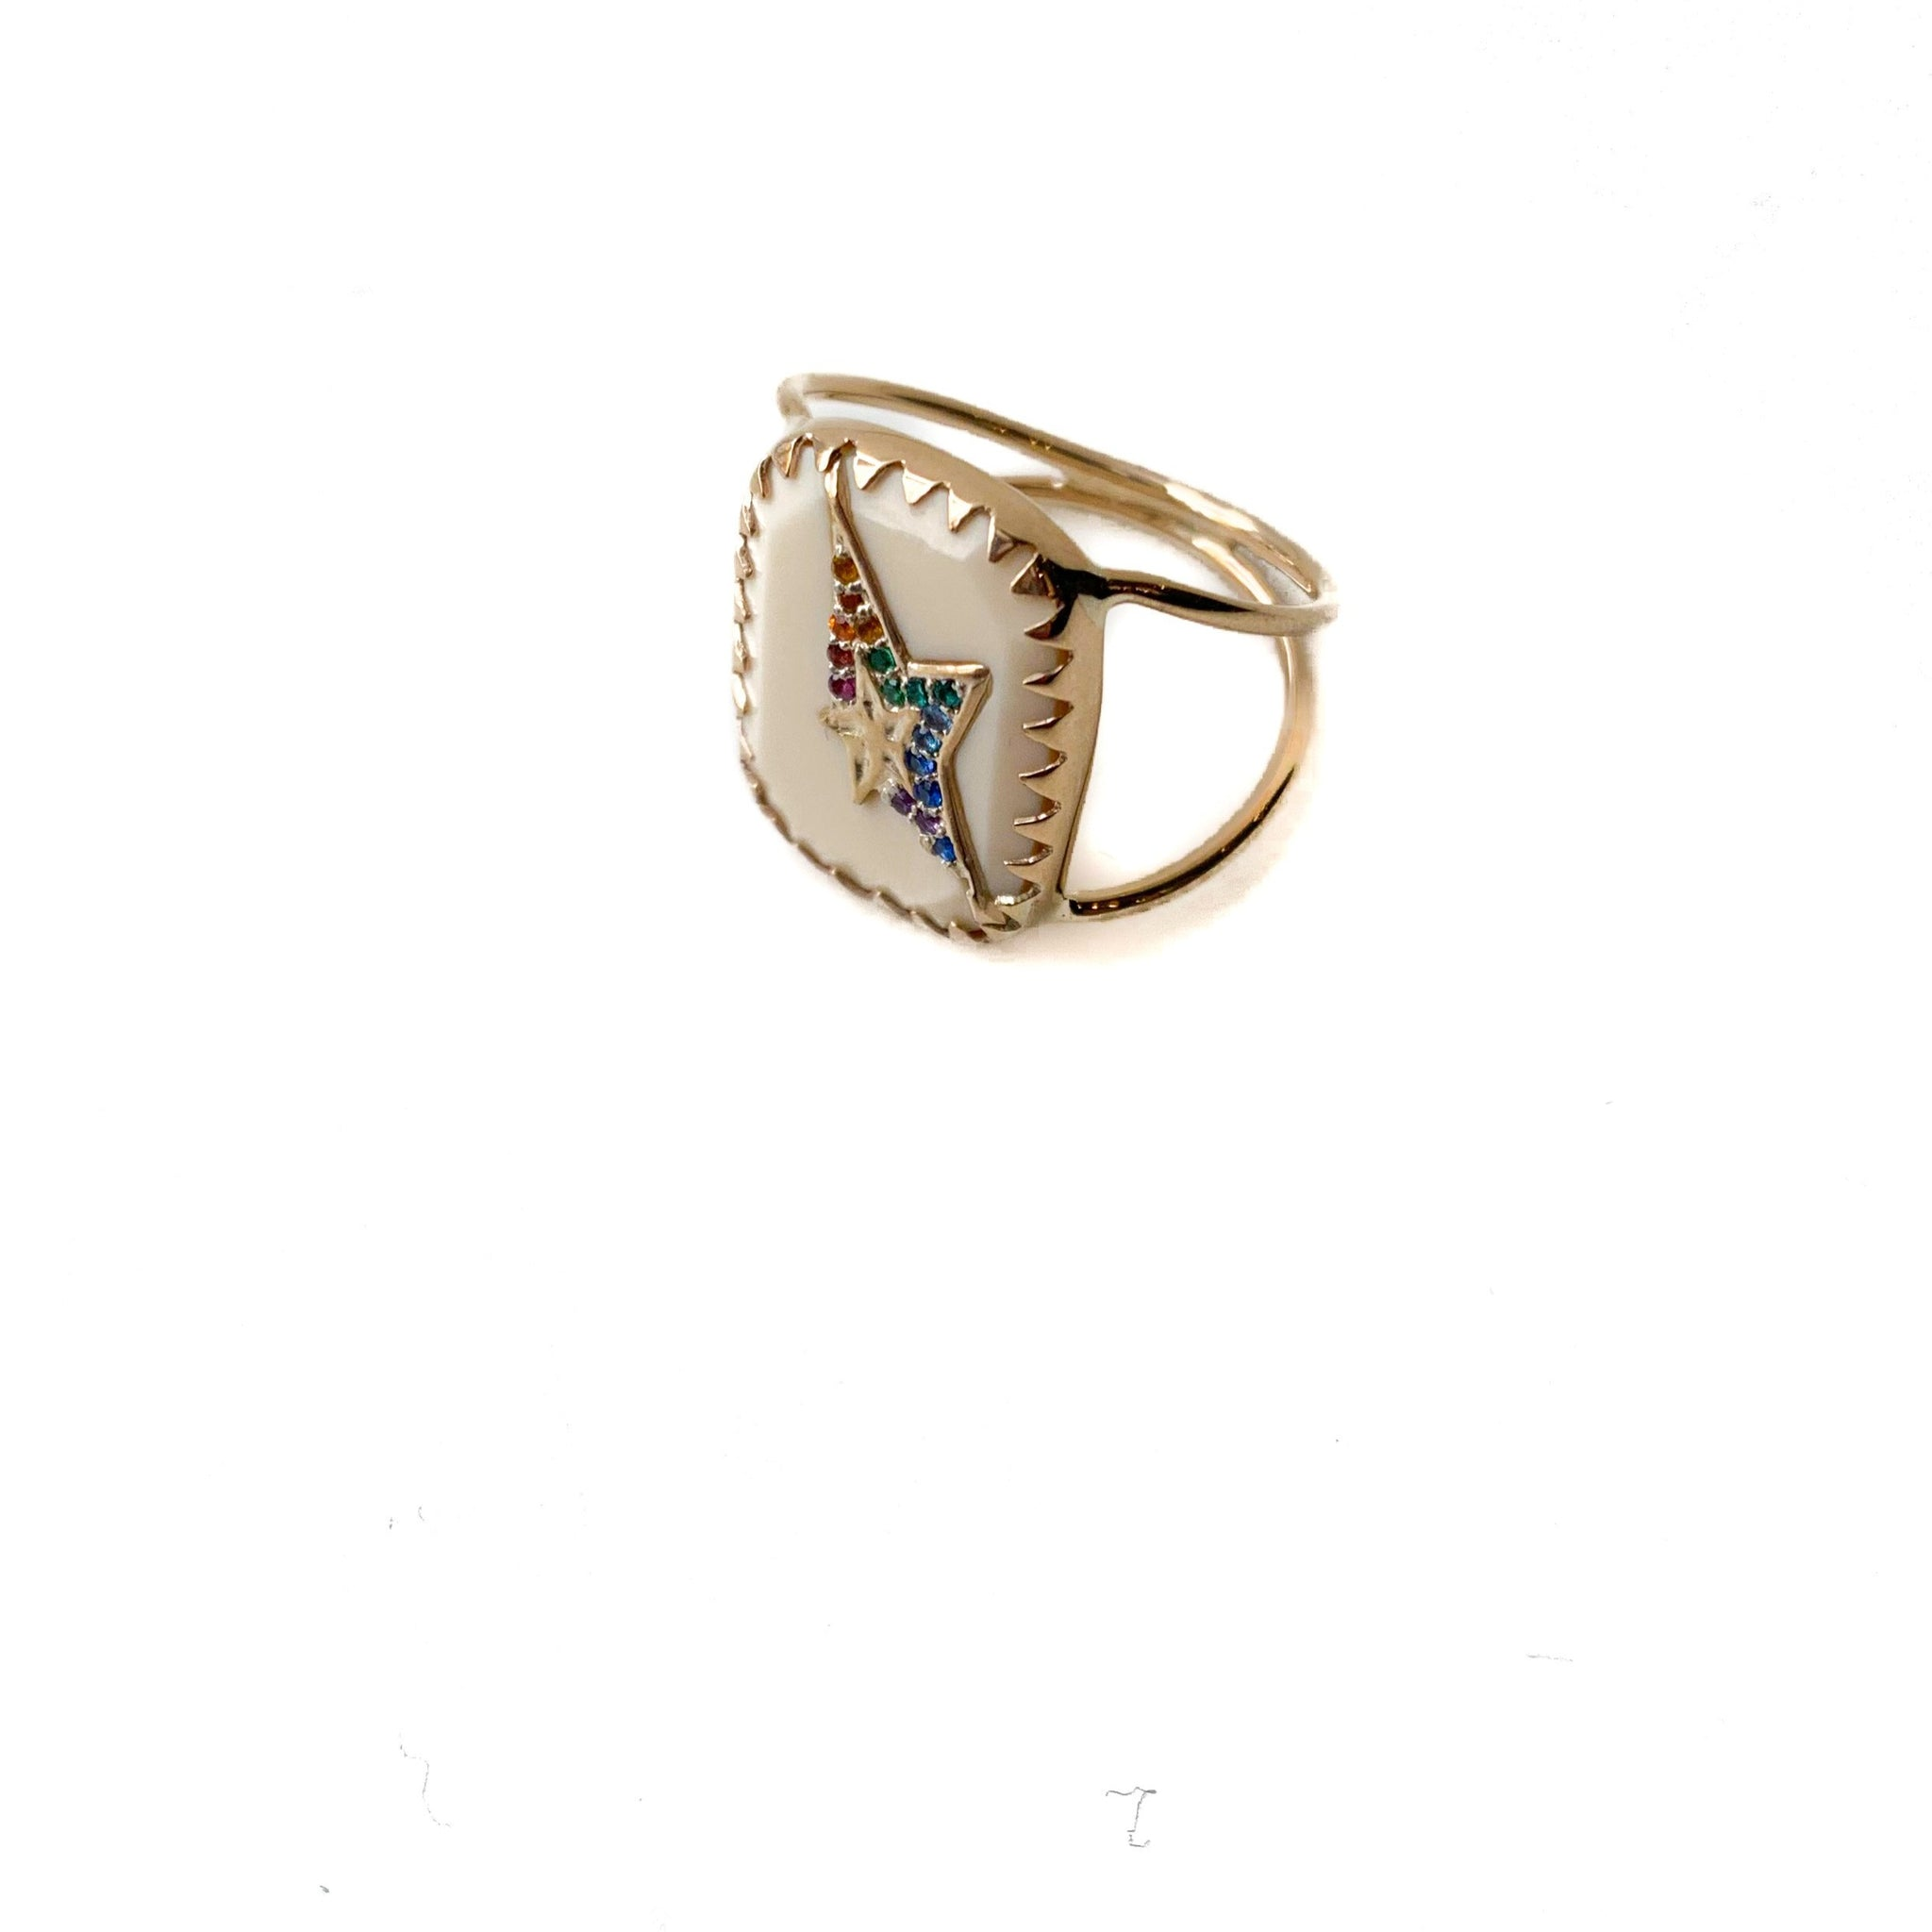 Varda N°1 Ring in White & Rainbow